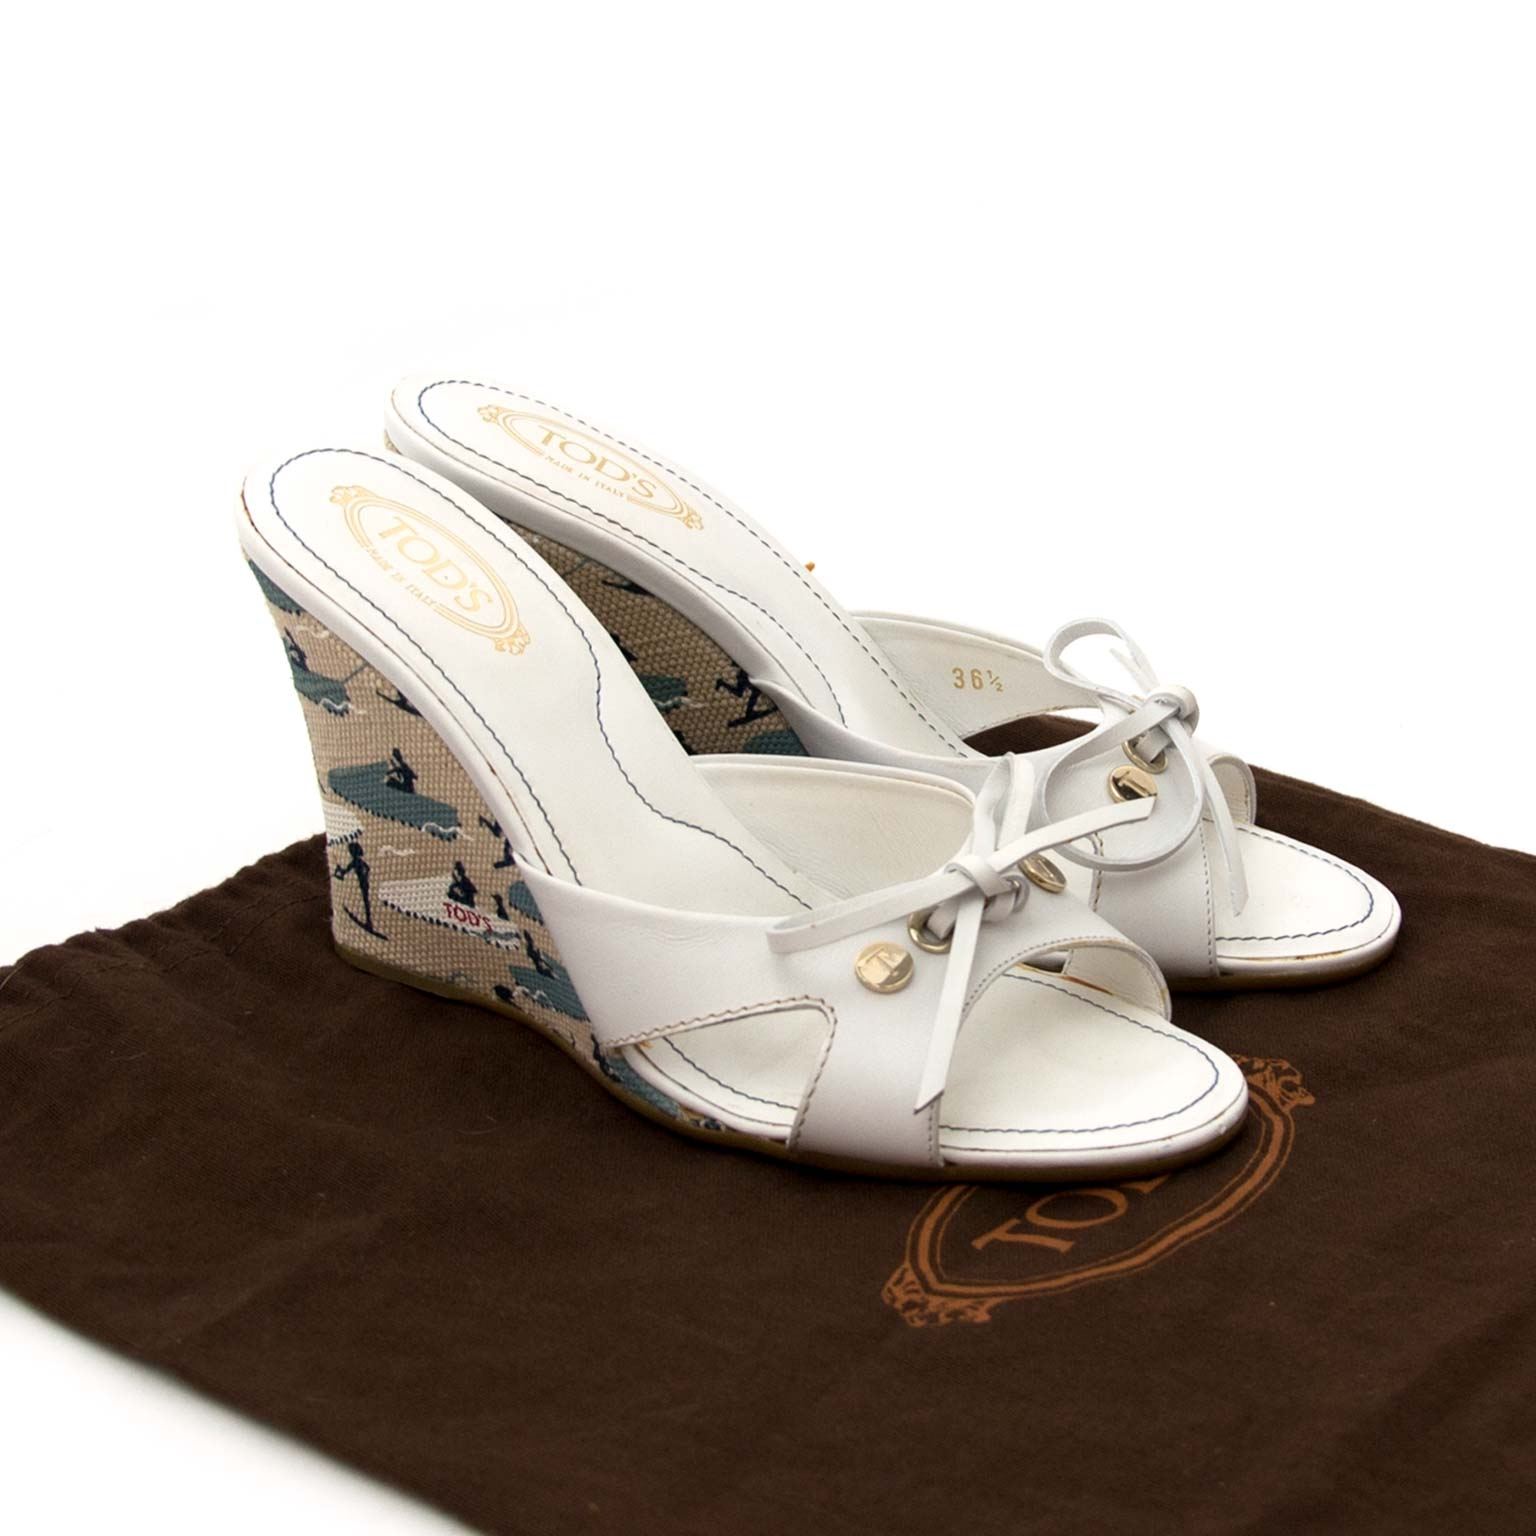 Tods White Sandal Wedges now online at labellov.com for the best price